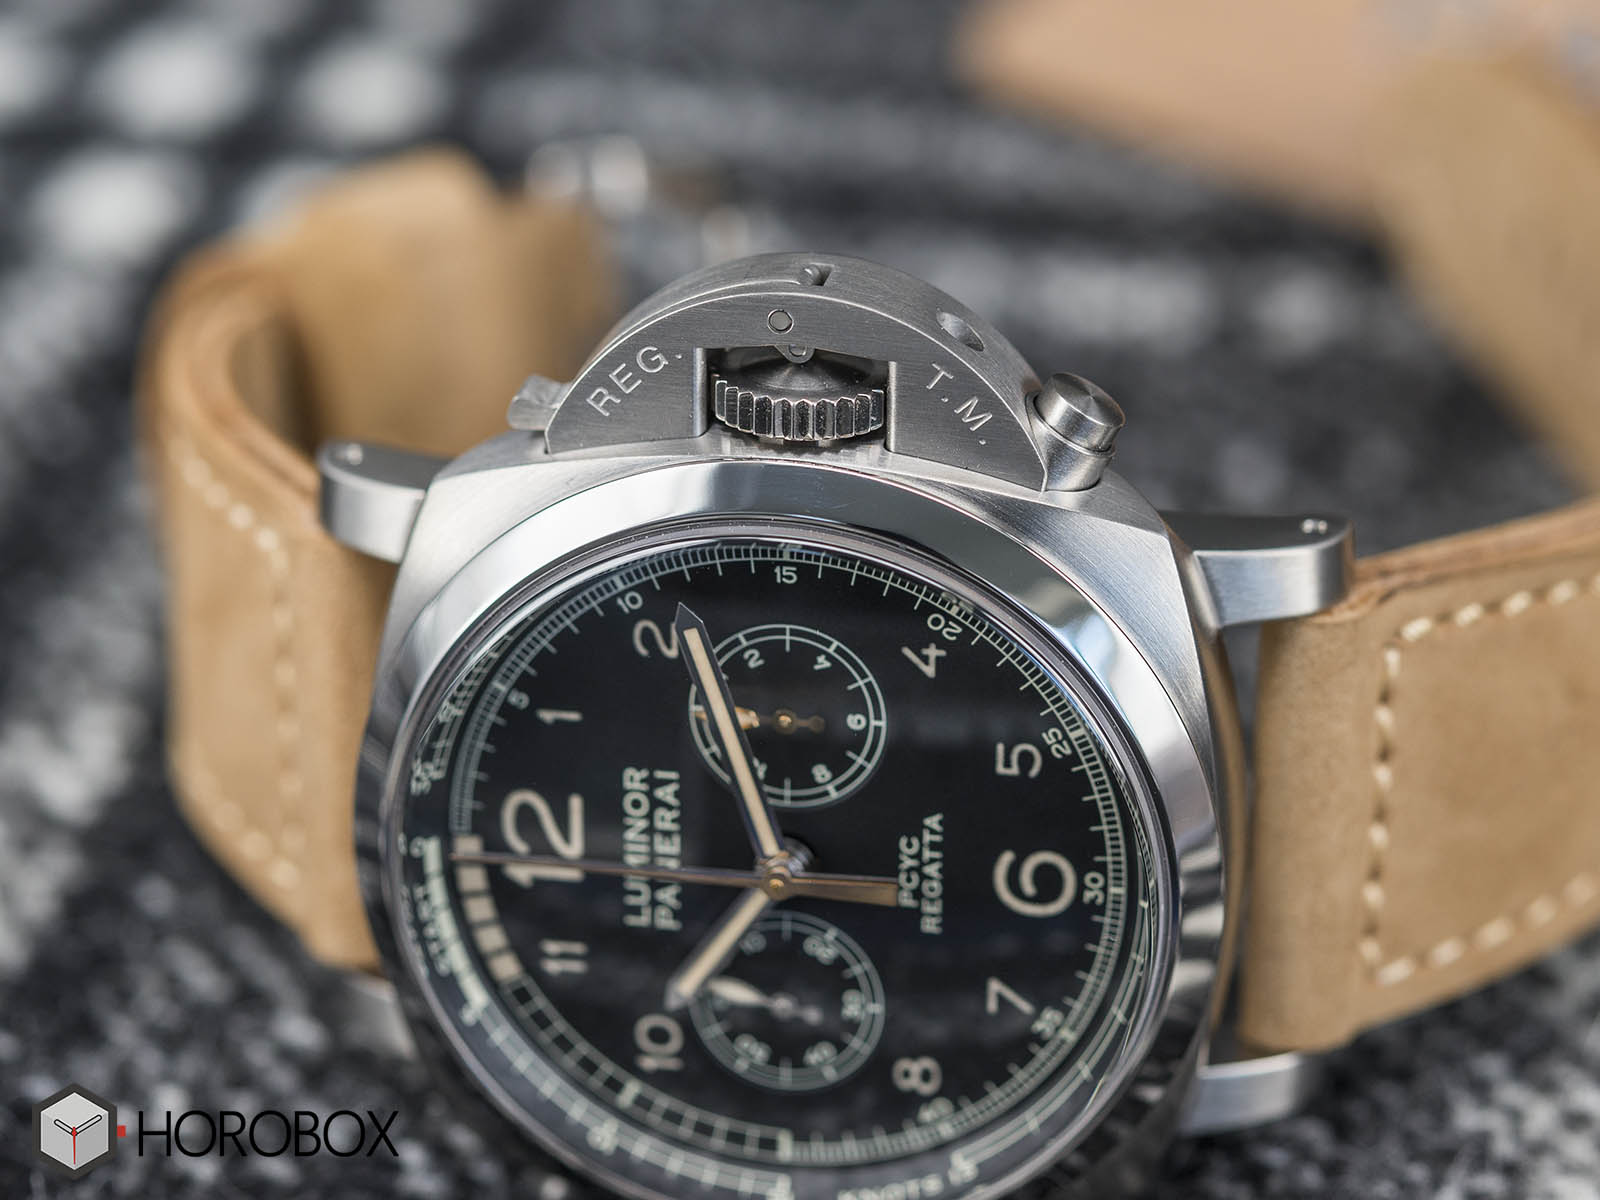 panerai-luminor-1950-pcyc-regatta-pam00652-4.jpg